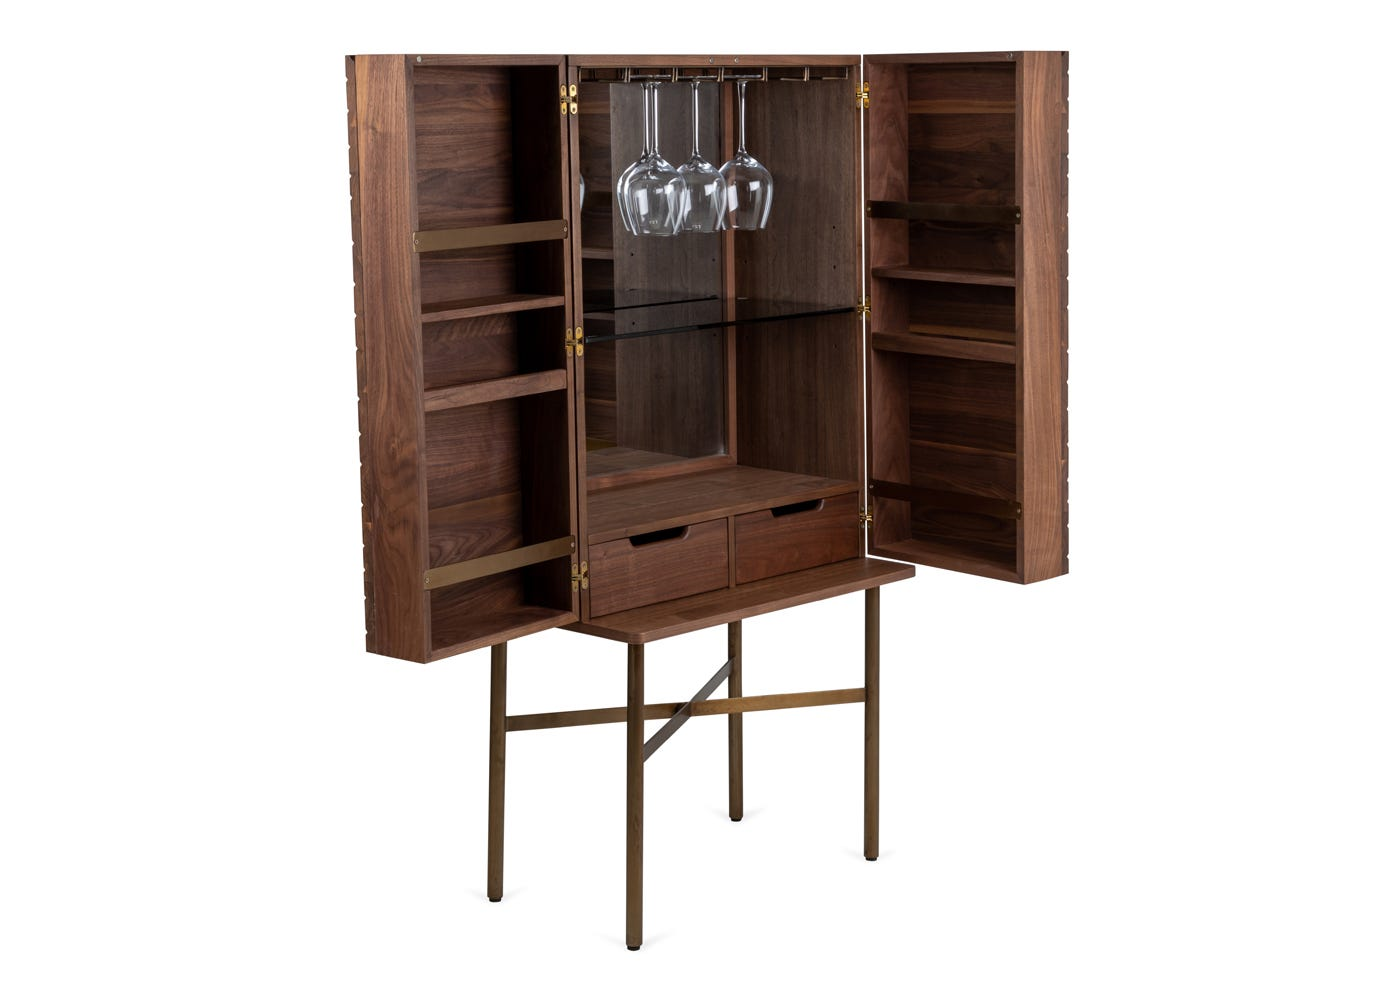 As shown: Valentina drinks cabinet.